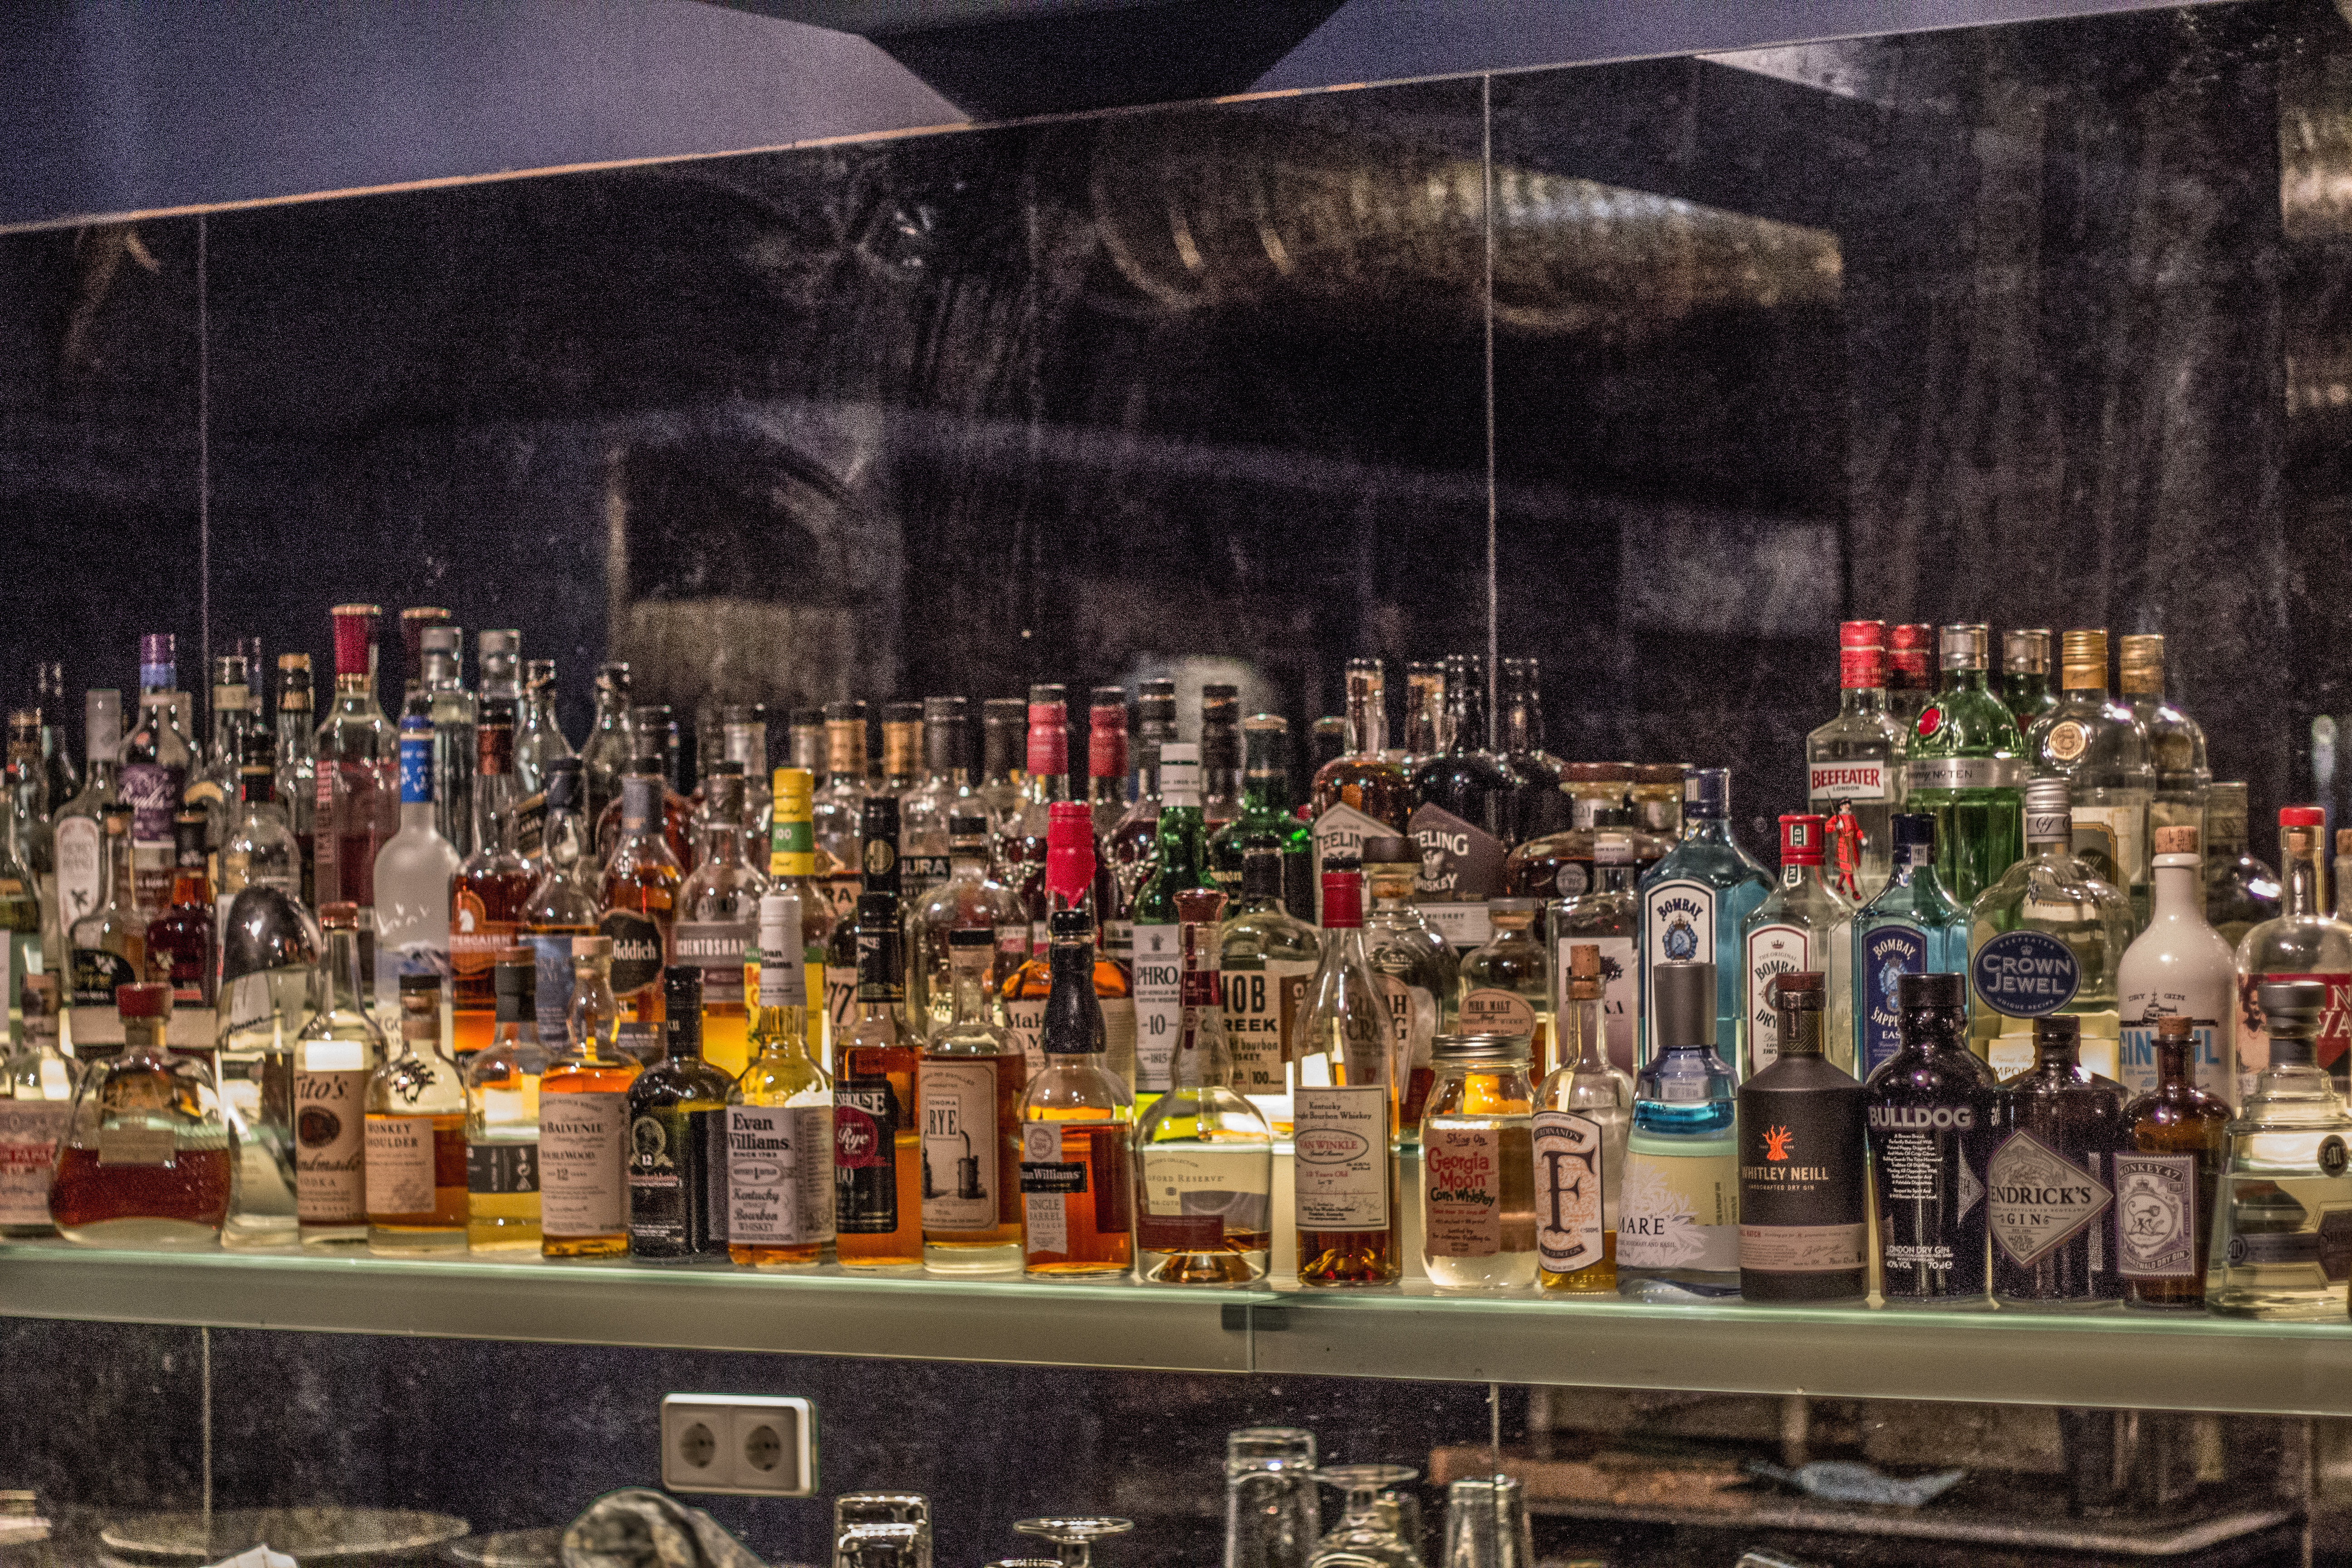 File:Backbar with bottles.jpg - Wikimedia Commons